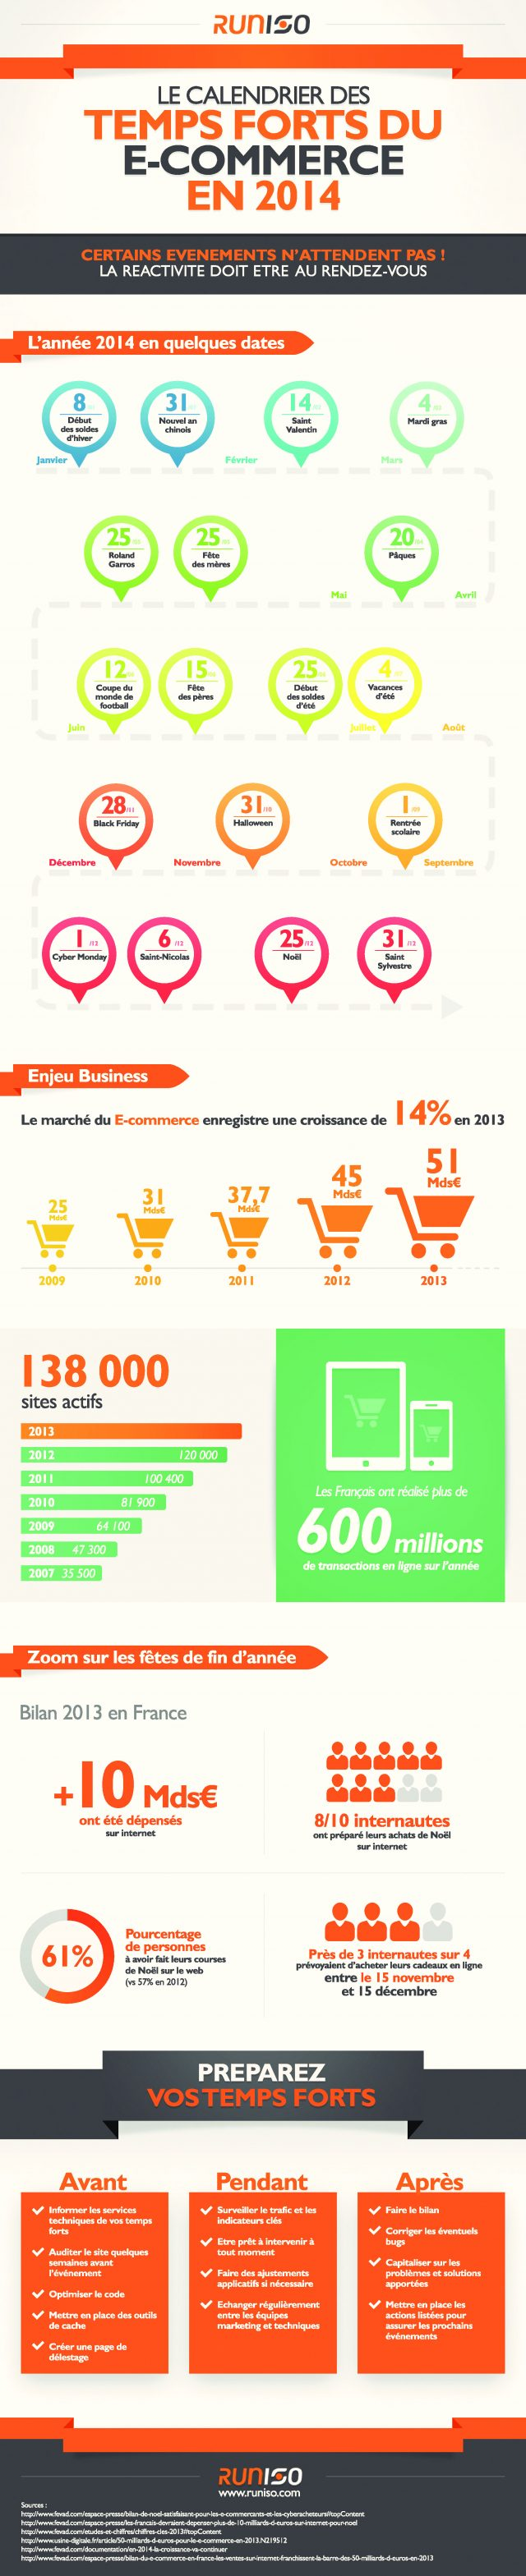 Ecommerce : Temps forts 2014